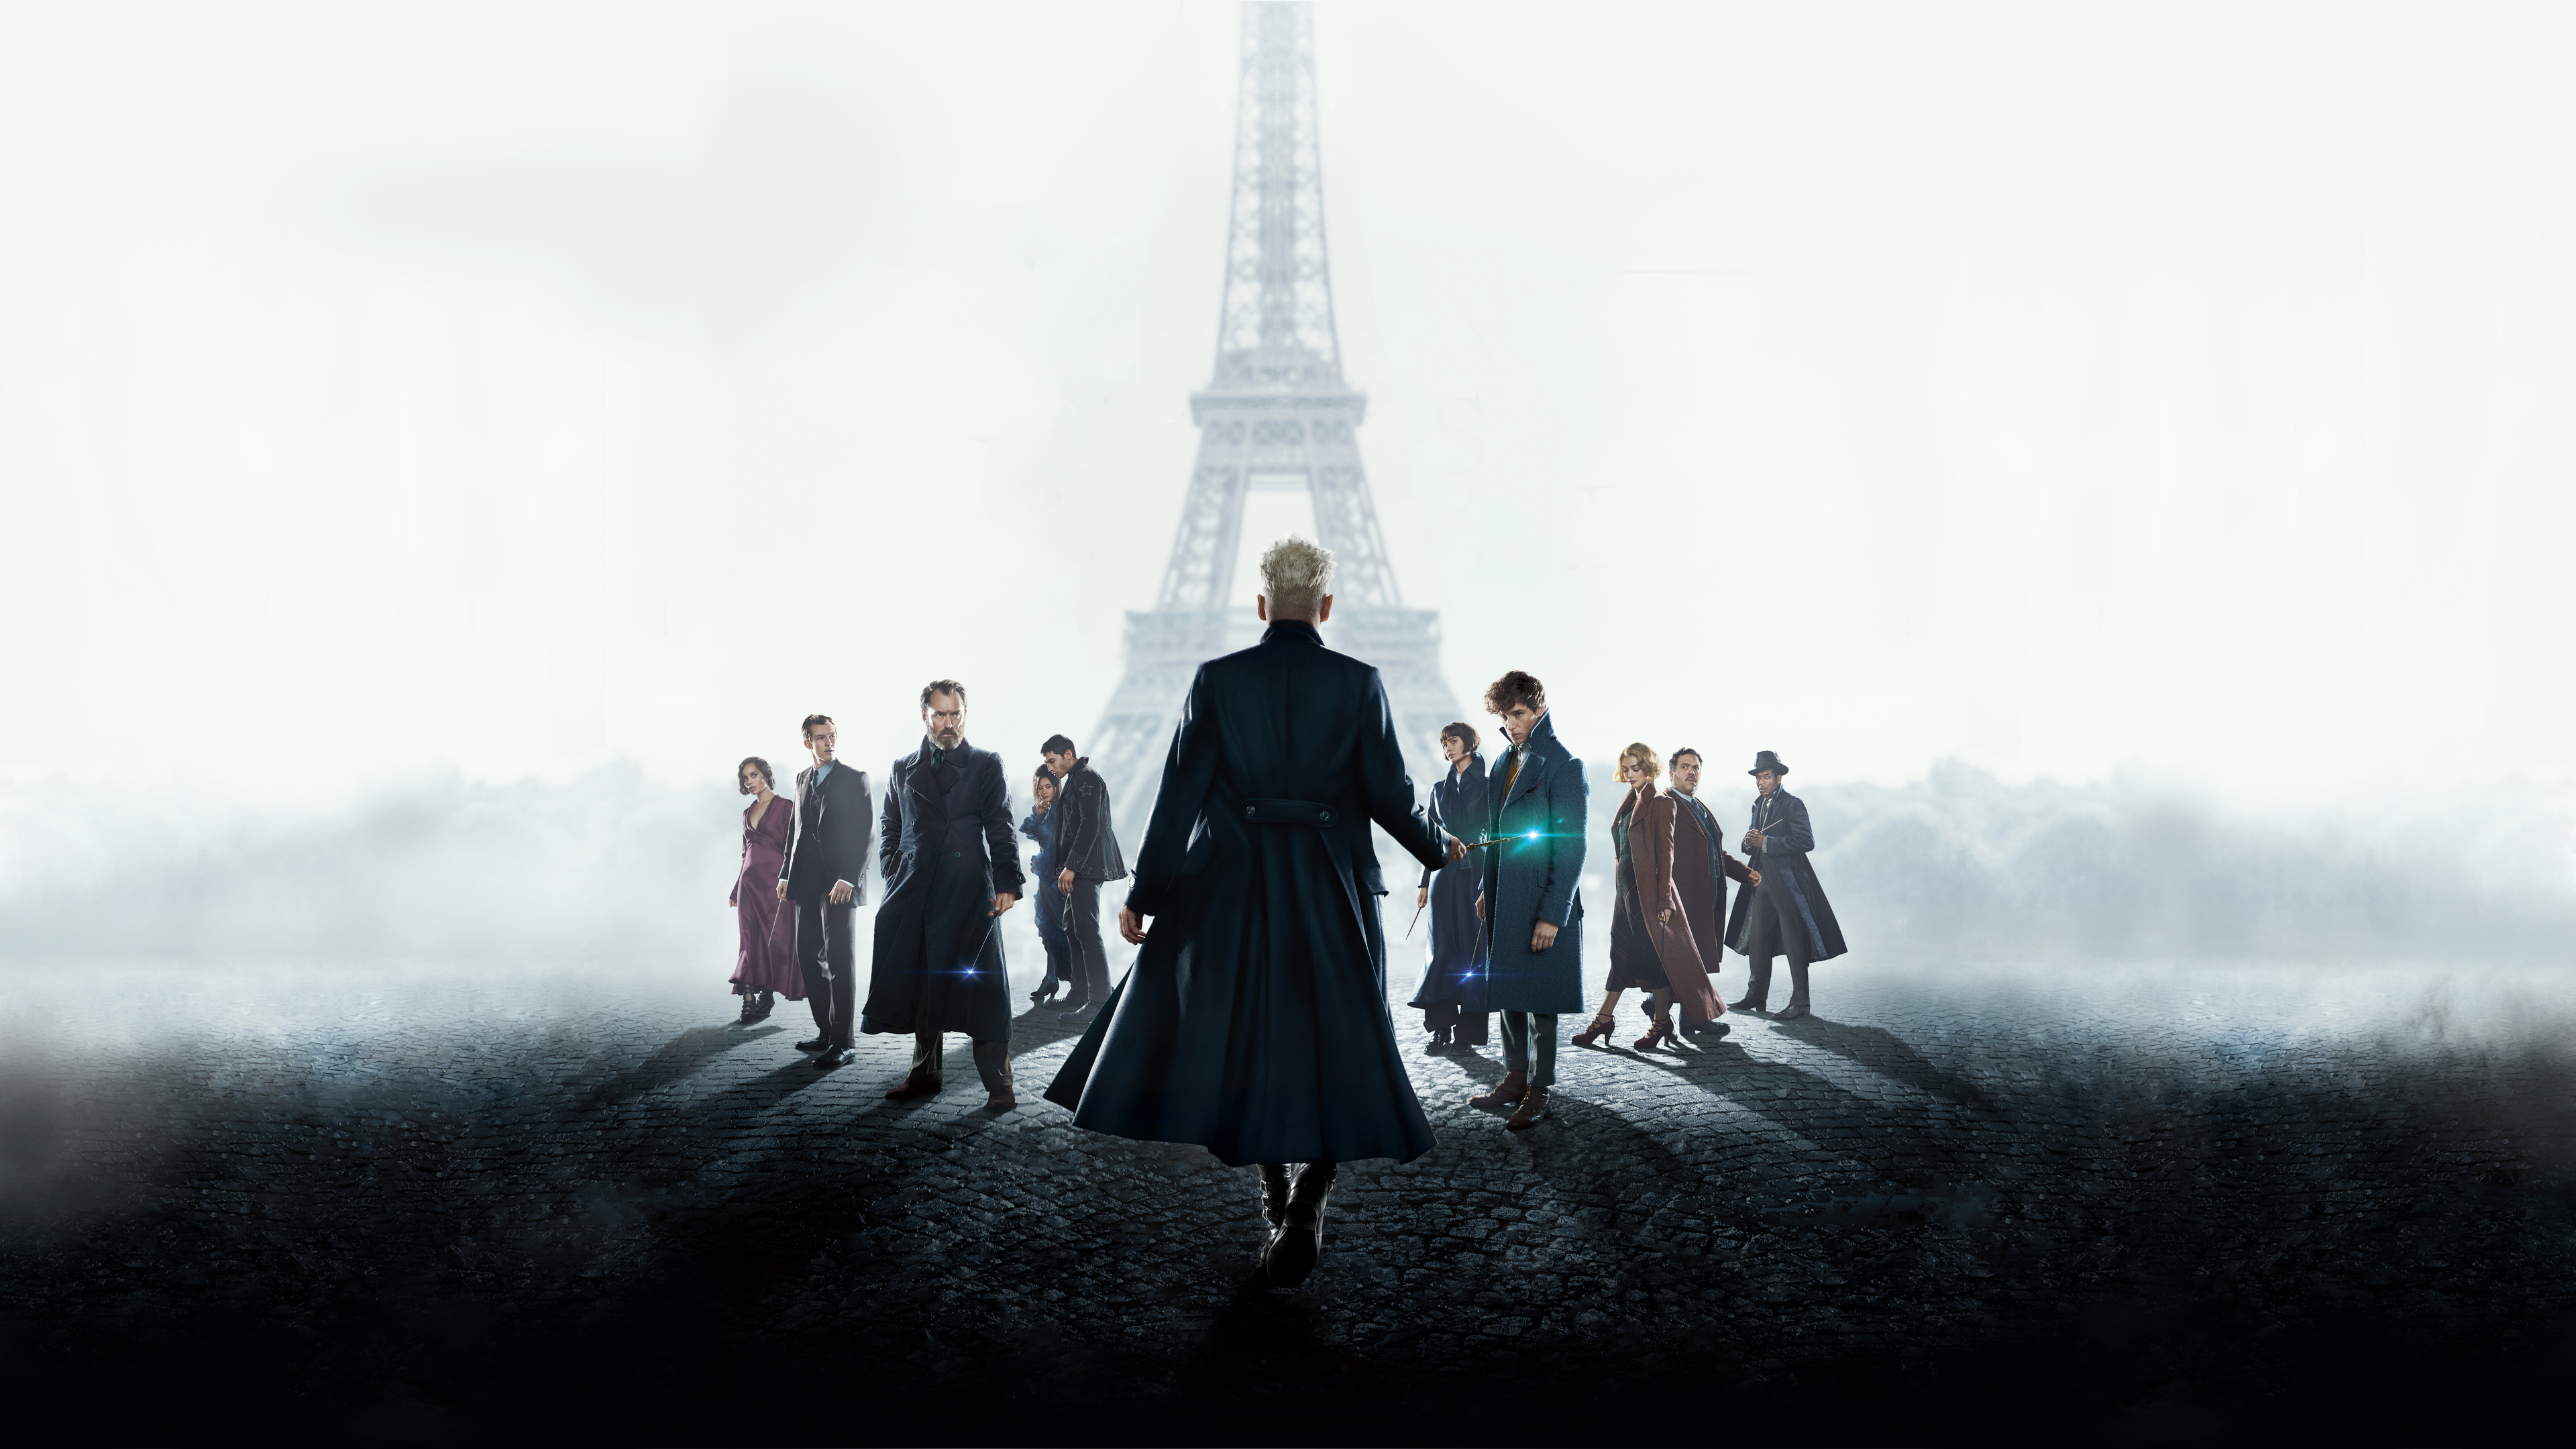 fantastic beasts the crimes of grindelwald wide 4k 1543105566 - Fantastic Beasts The Crimes Of Grindelwald Wide 4k - movies wallpapers, hd-wallpapers, fantastic beasts the crimes of grindelwald wallpapers, fantastic beasts 2 wallpapers, 5k wallpapers, 4k-wallpapers, 2018-movies-wallpapers